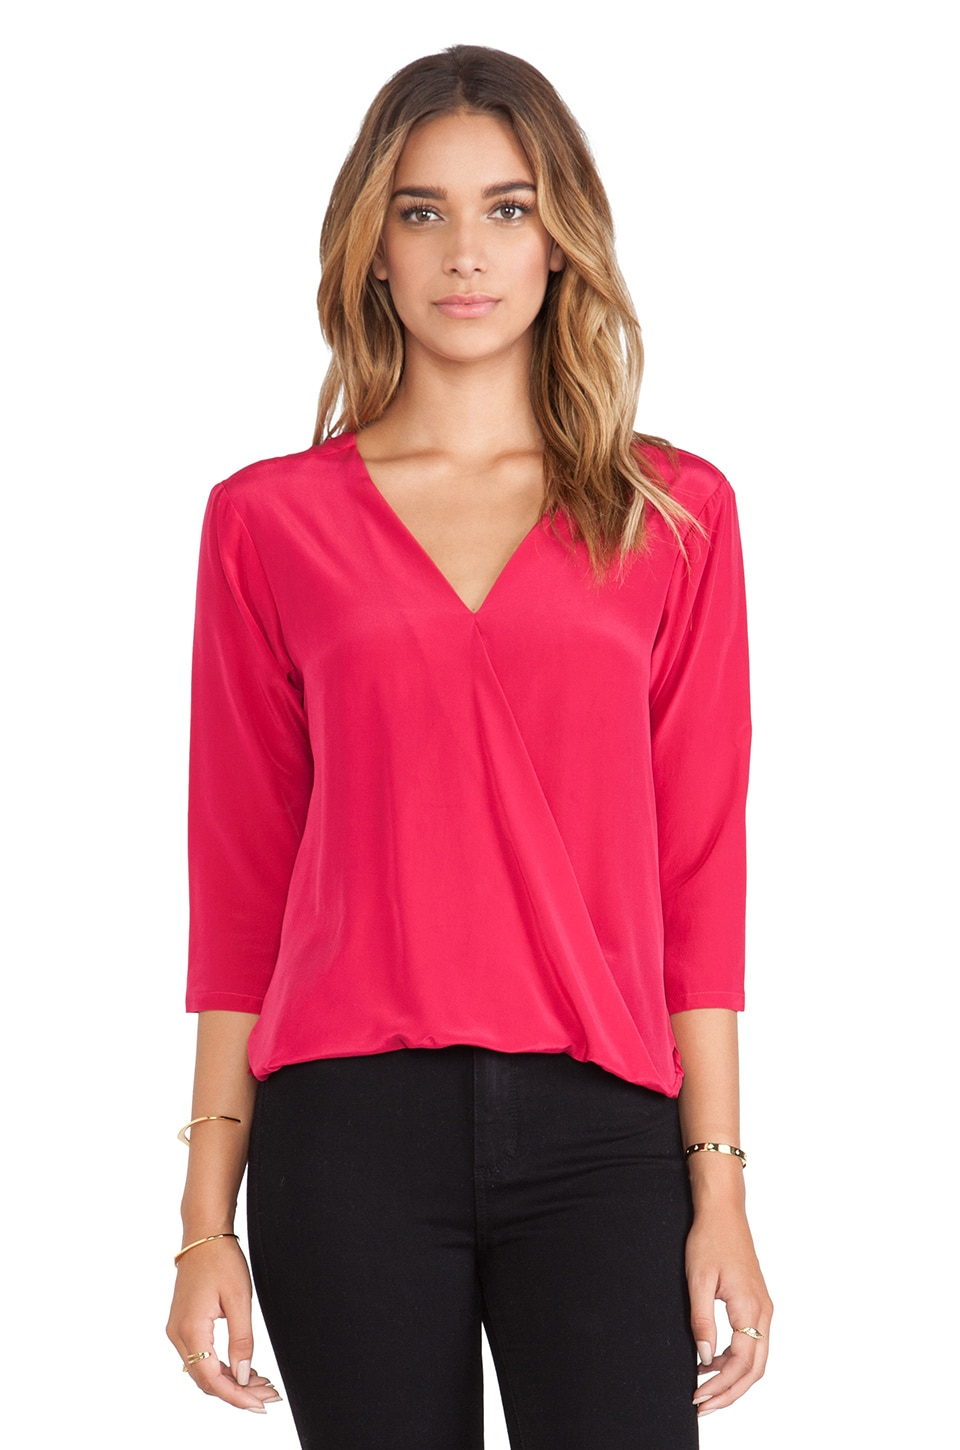 amour vert Devon Crossover Blouse in Raspberry